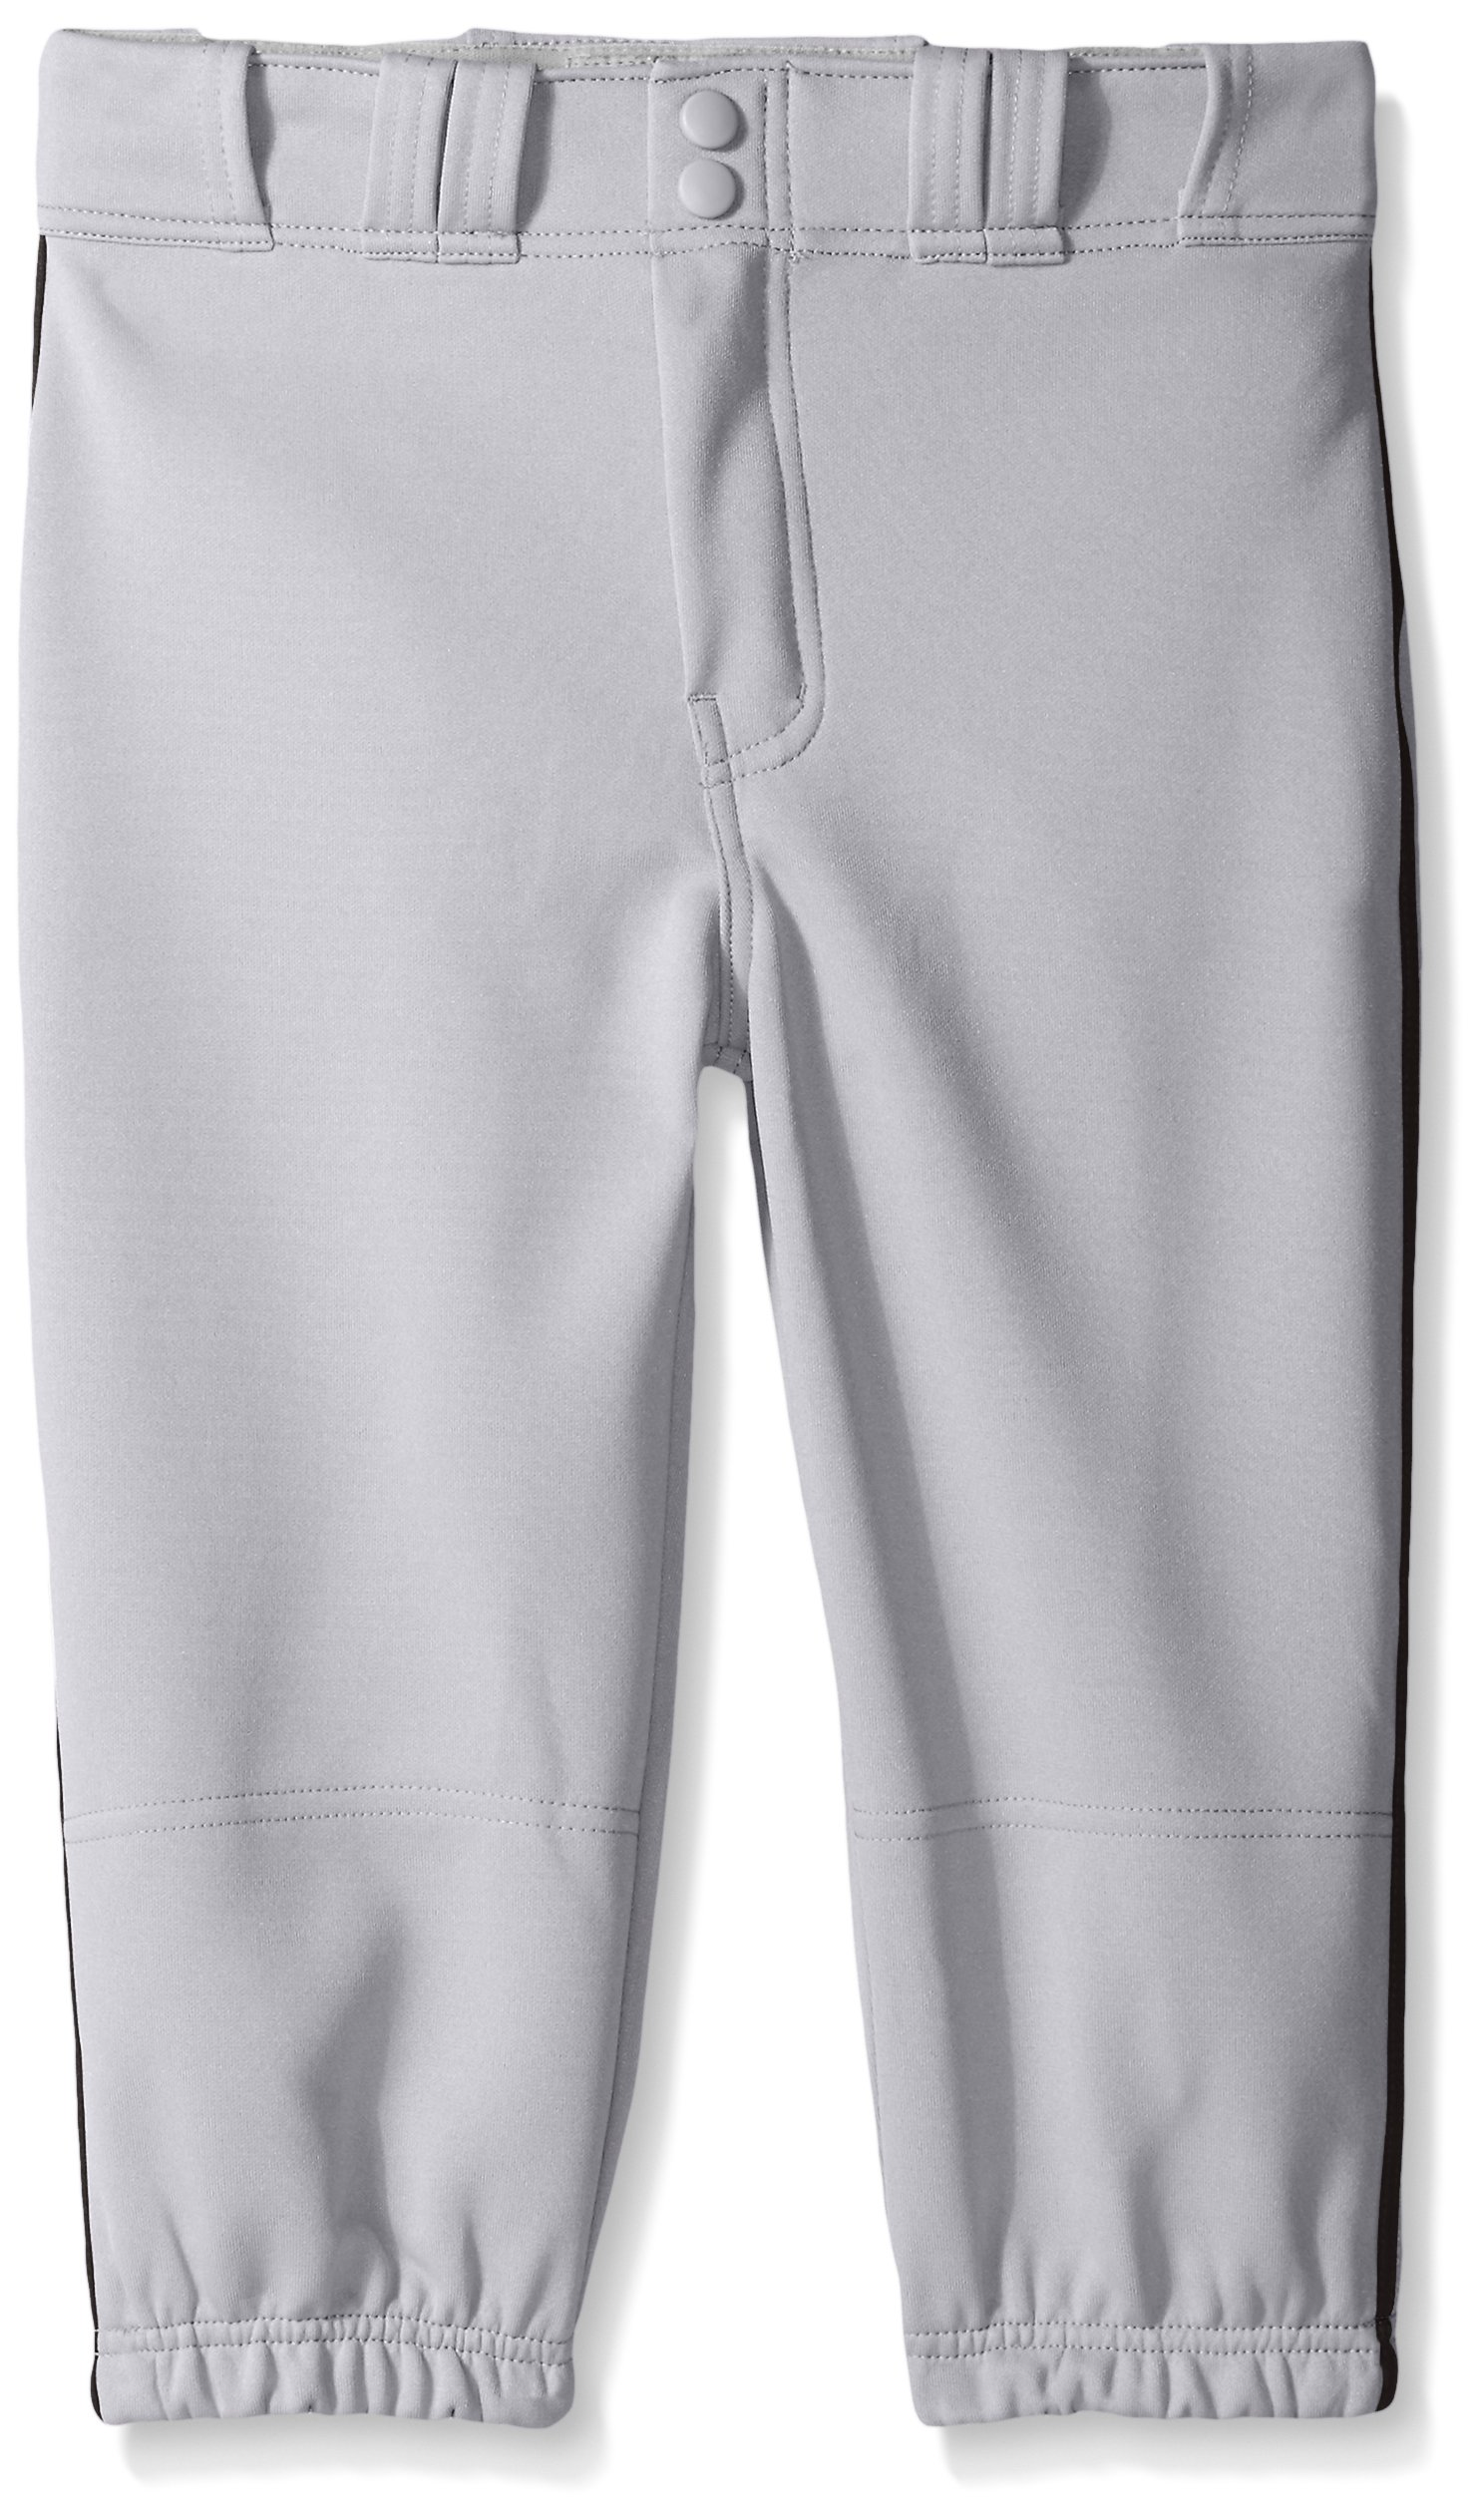 Easton Boys PRO Plus Piped Knicker, Grey/Black, Youth XL by Easton